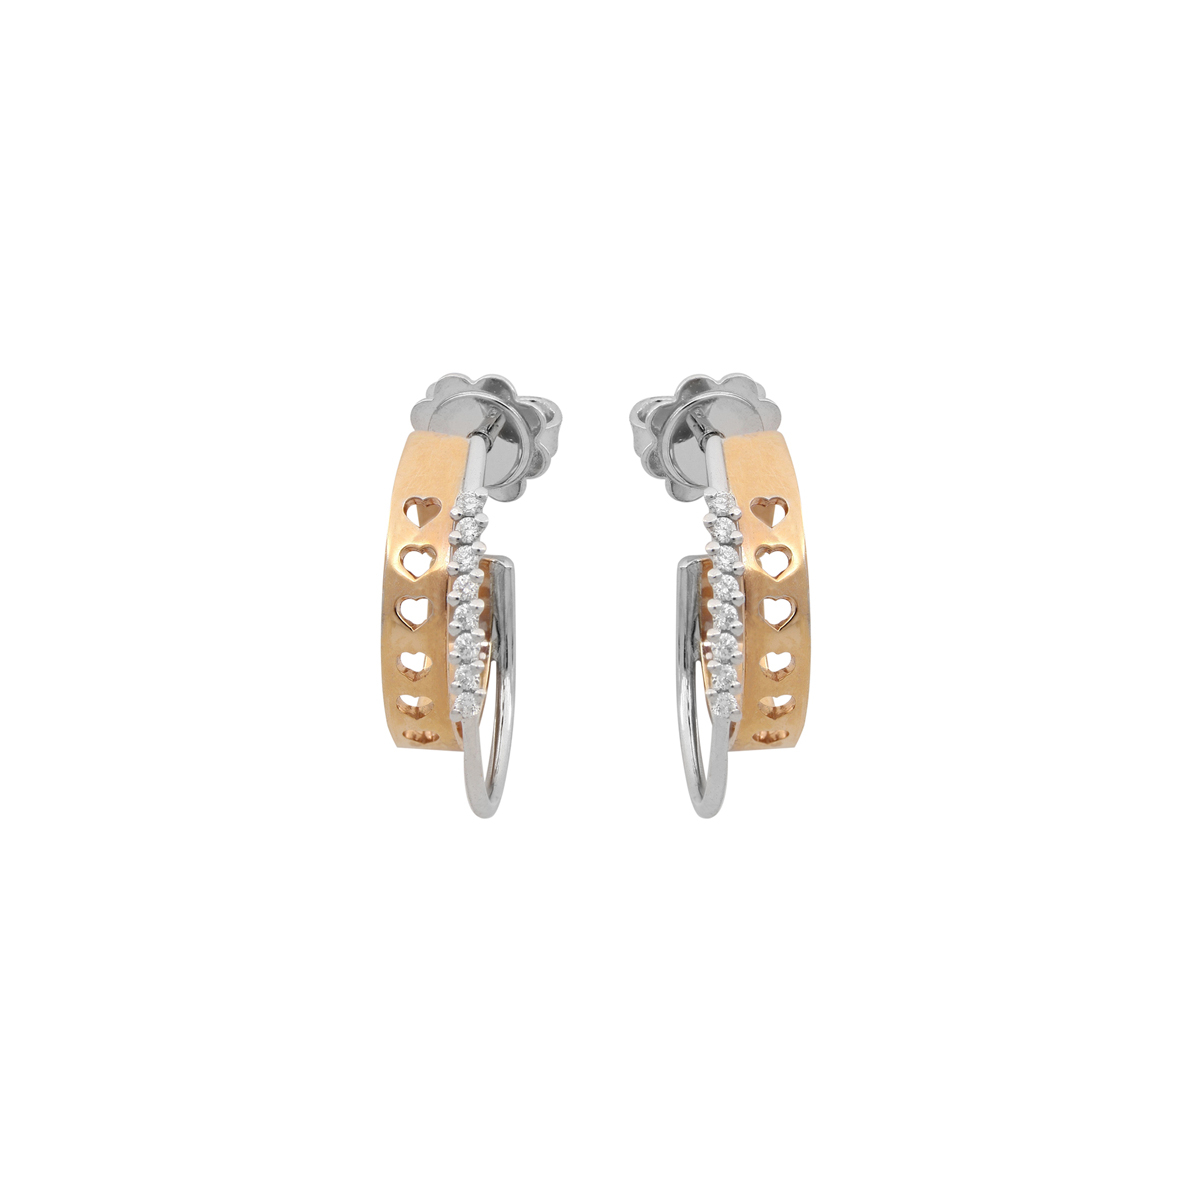 Cut-Out Heart Earrings with Diamonds